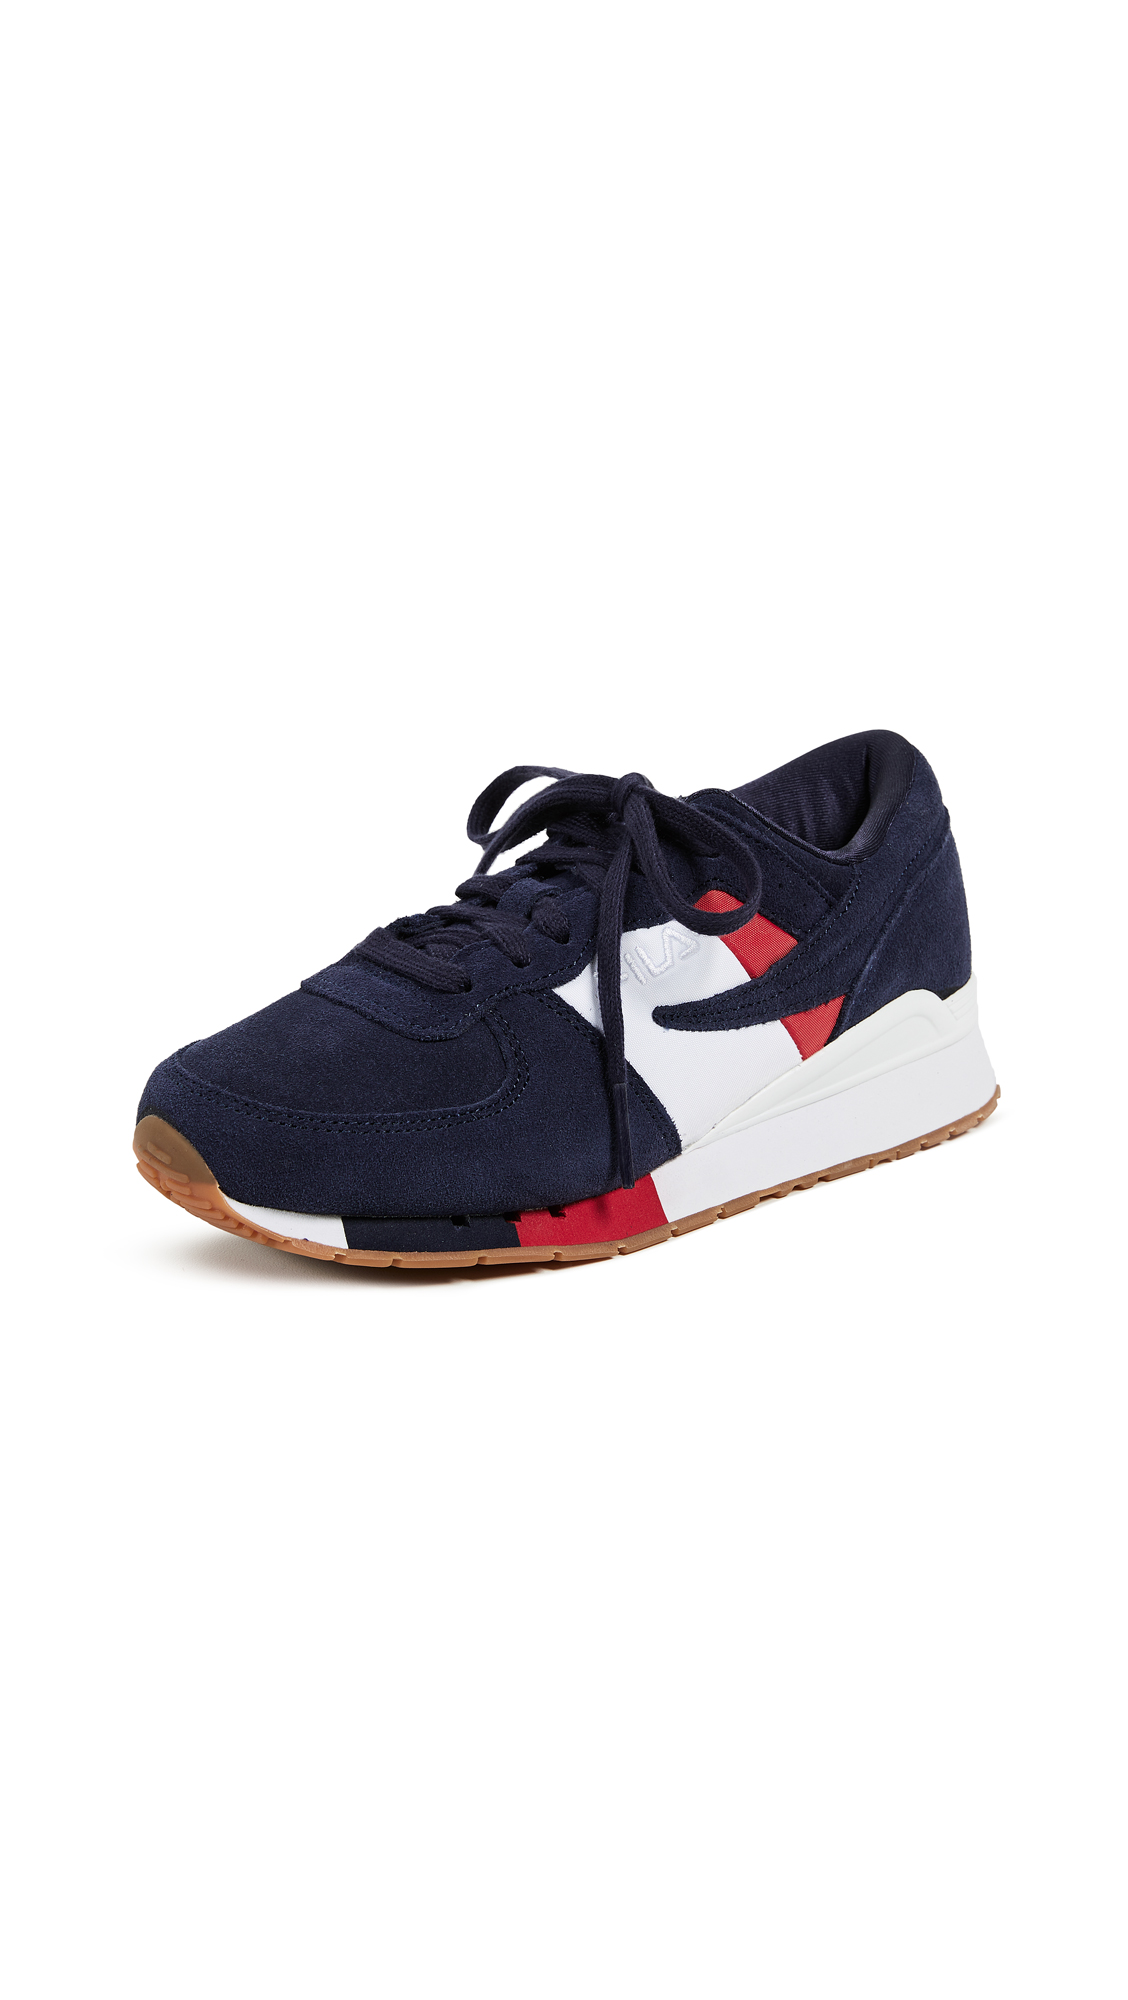 Fila Original Running Chaira Sneakers - Navy